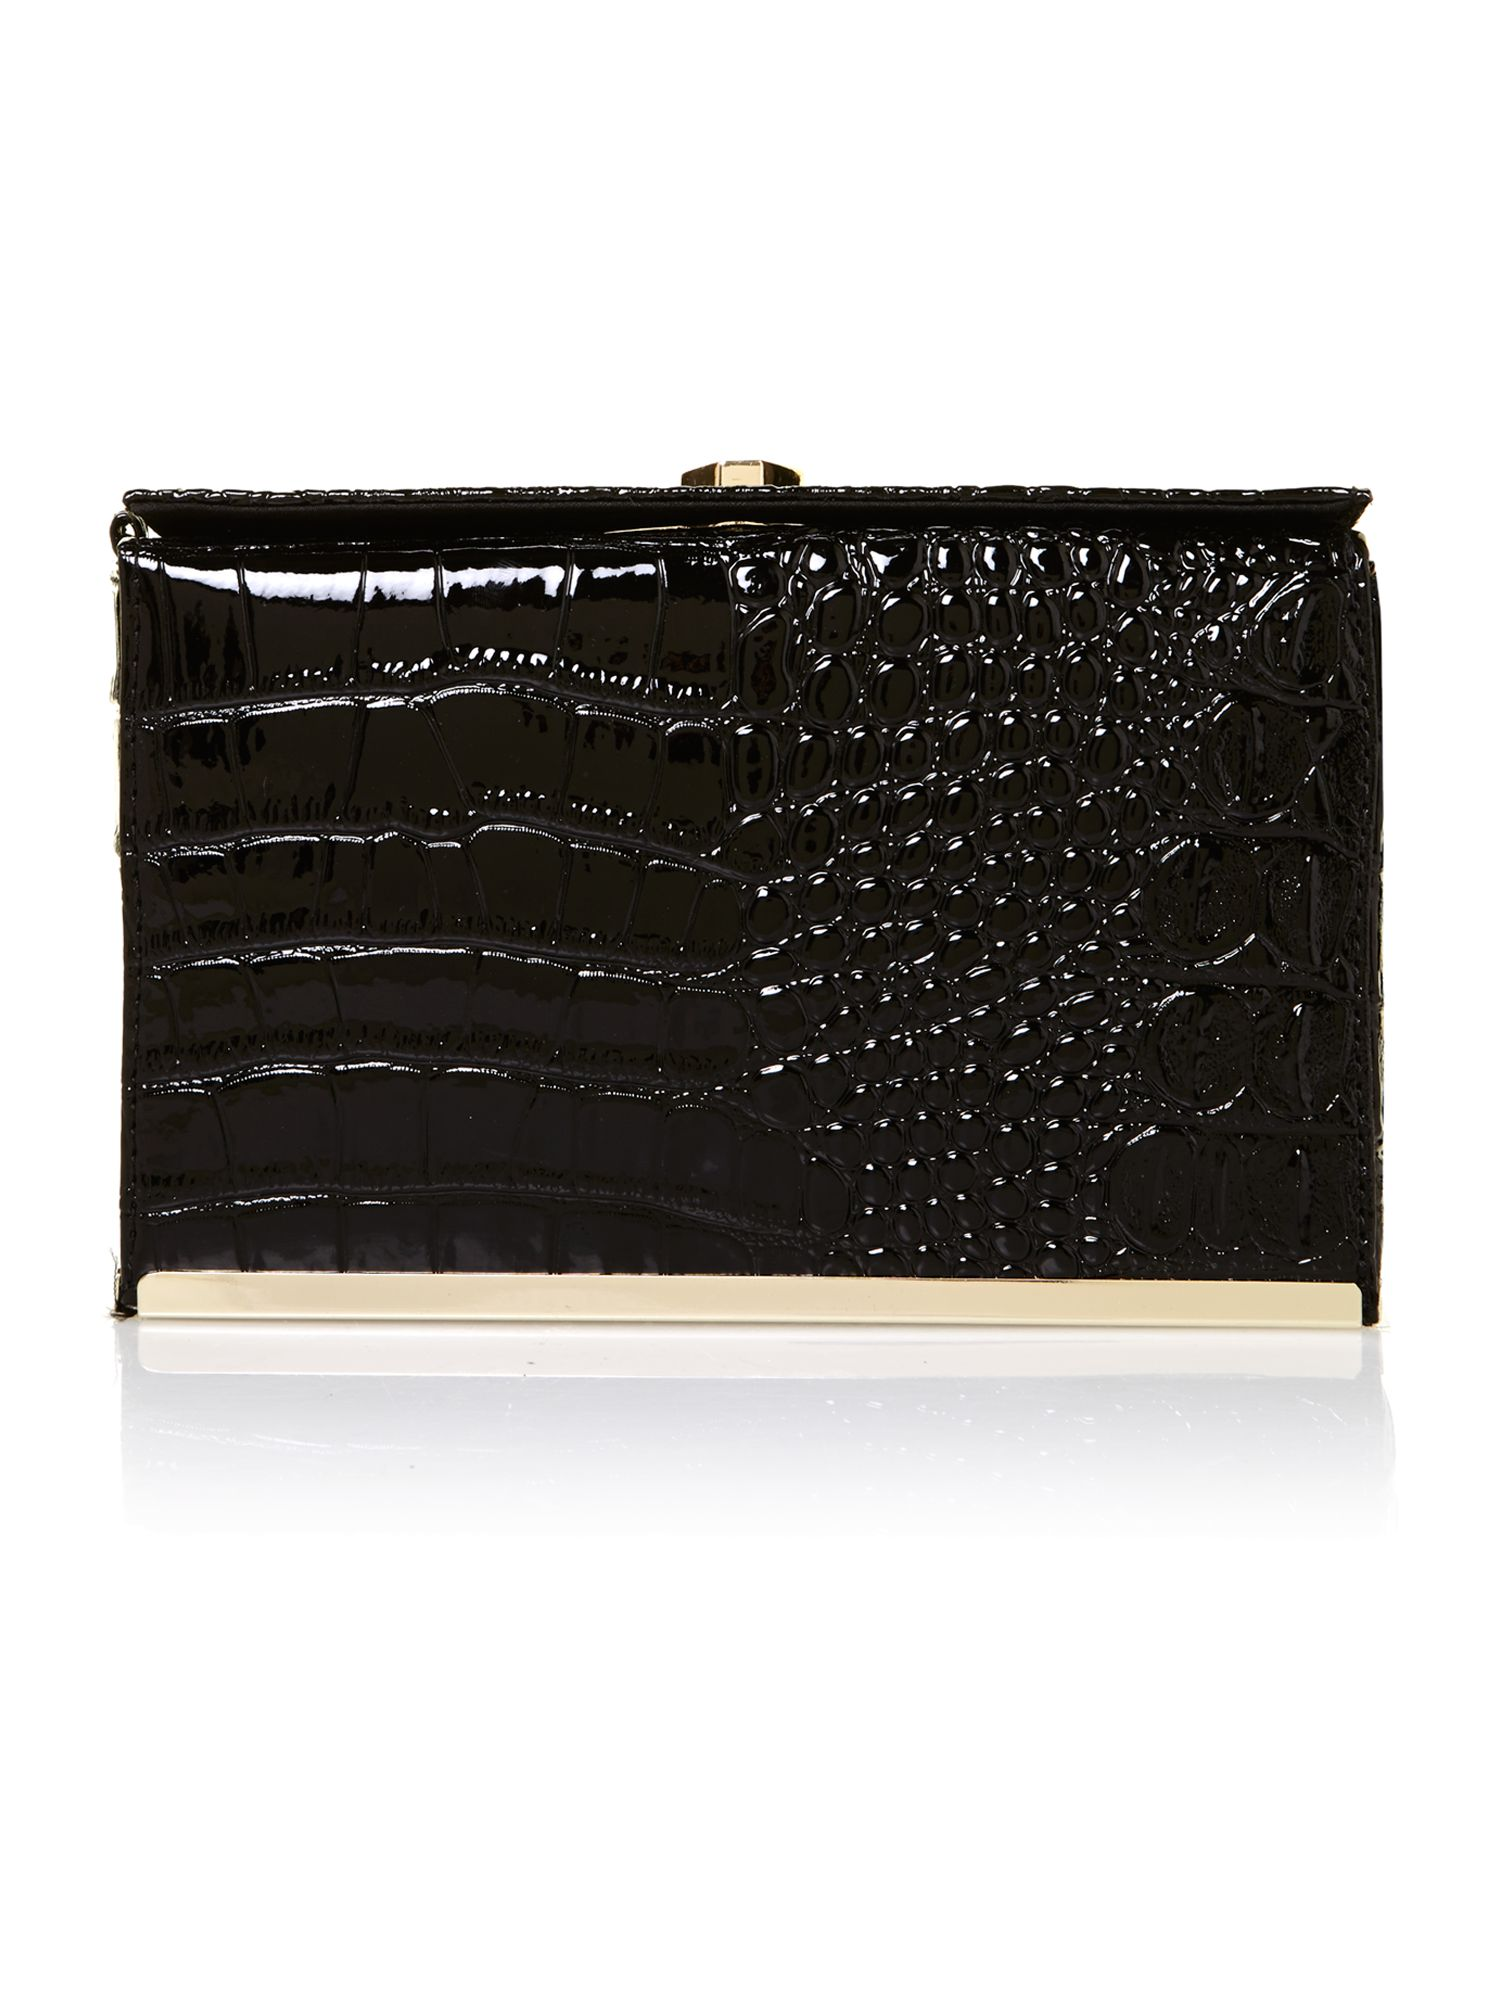 Black croc box clutch bag